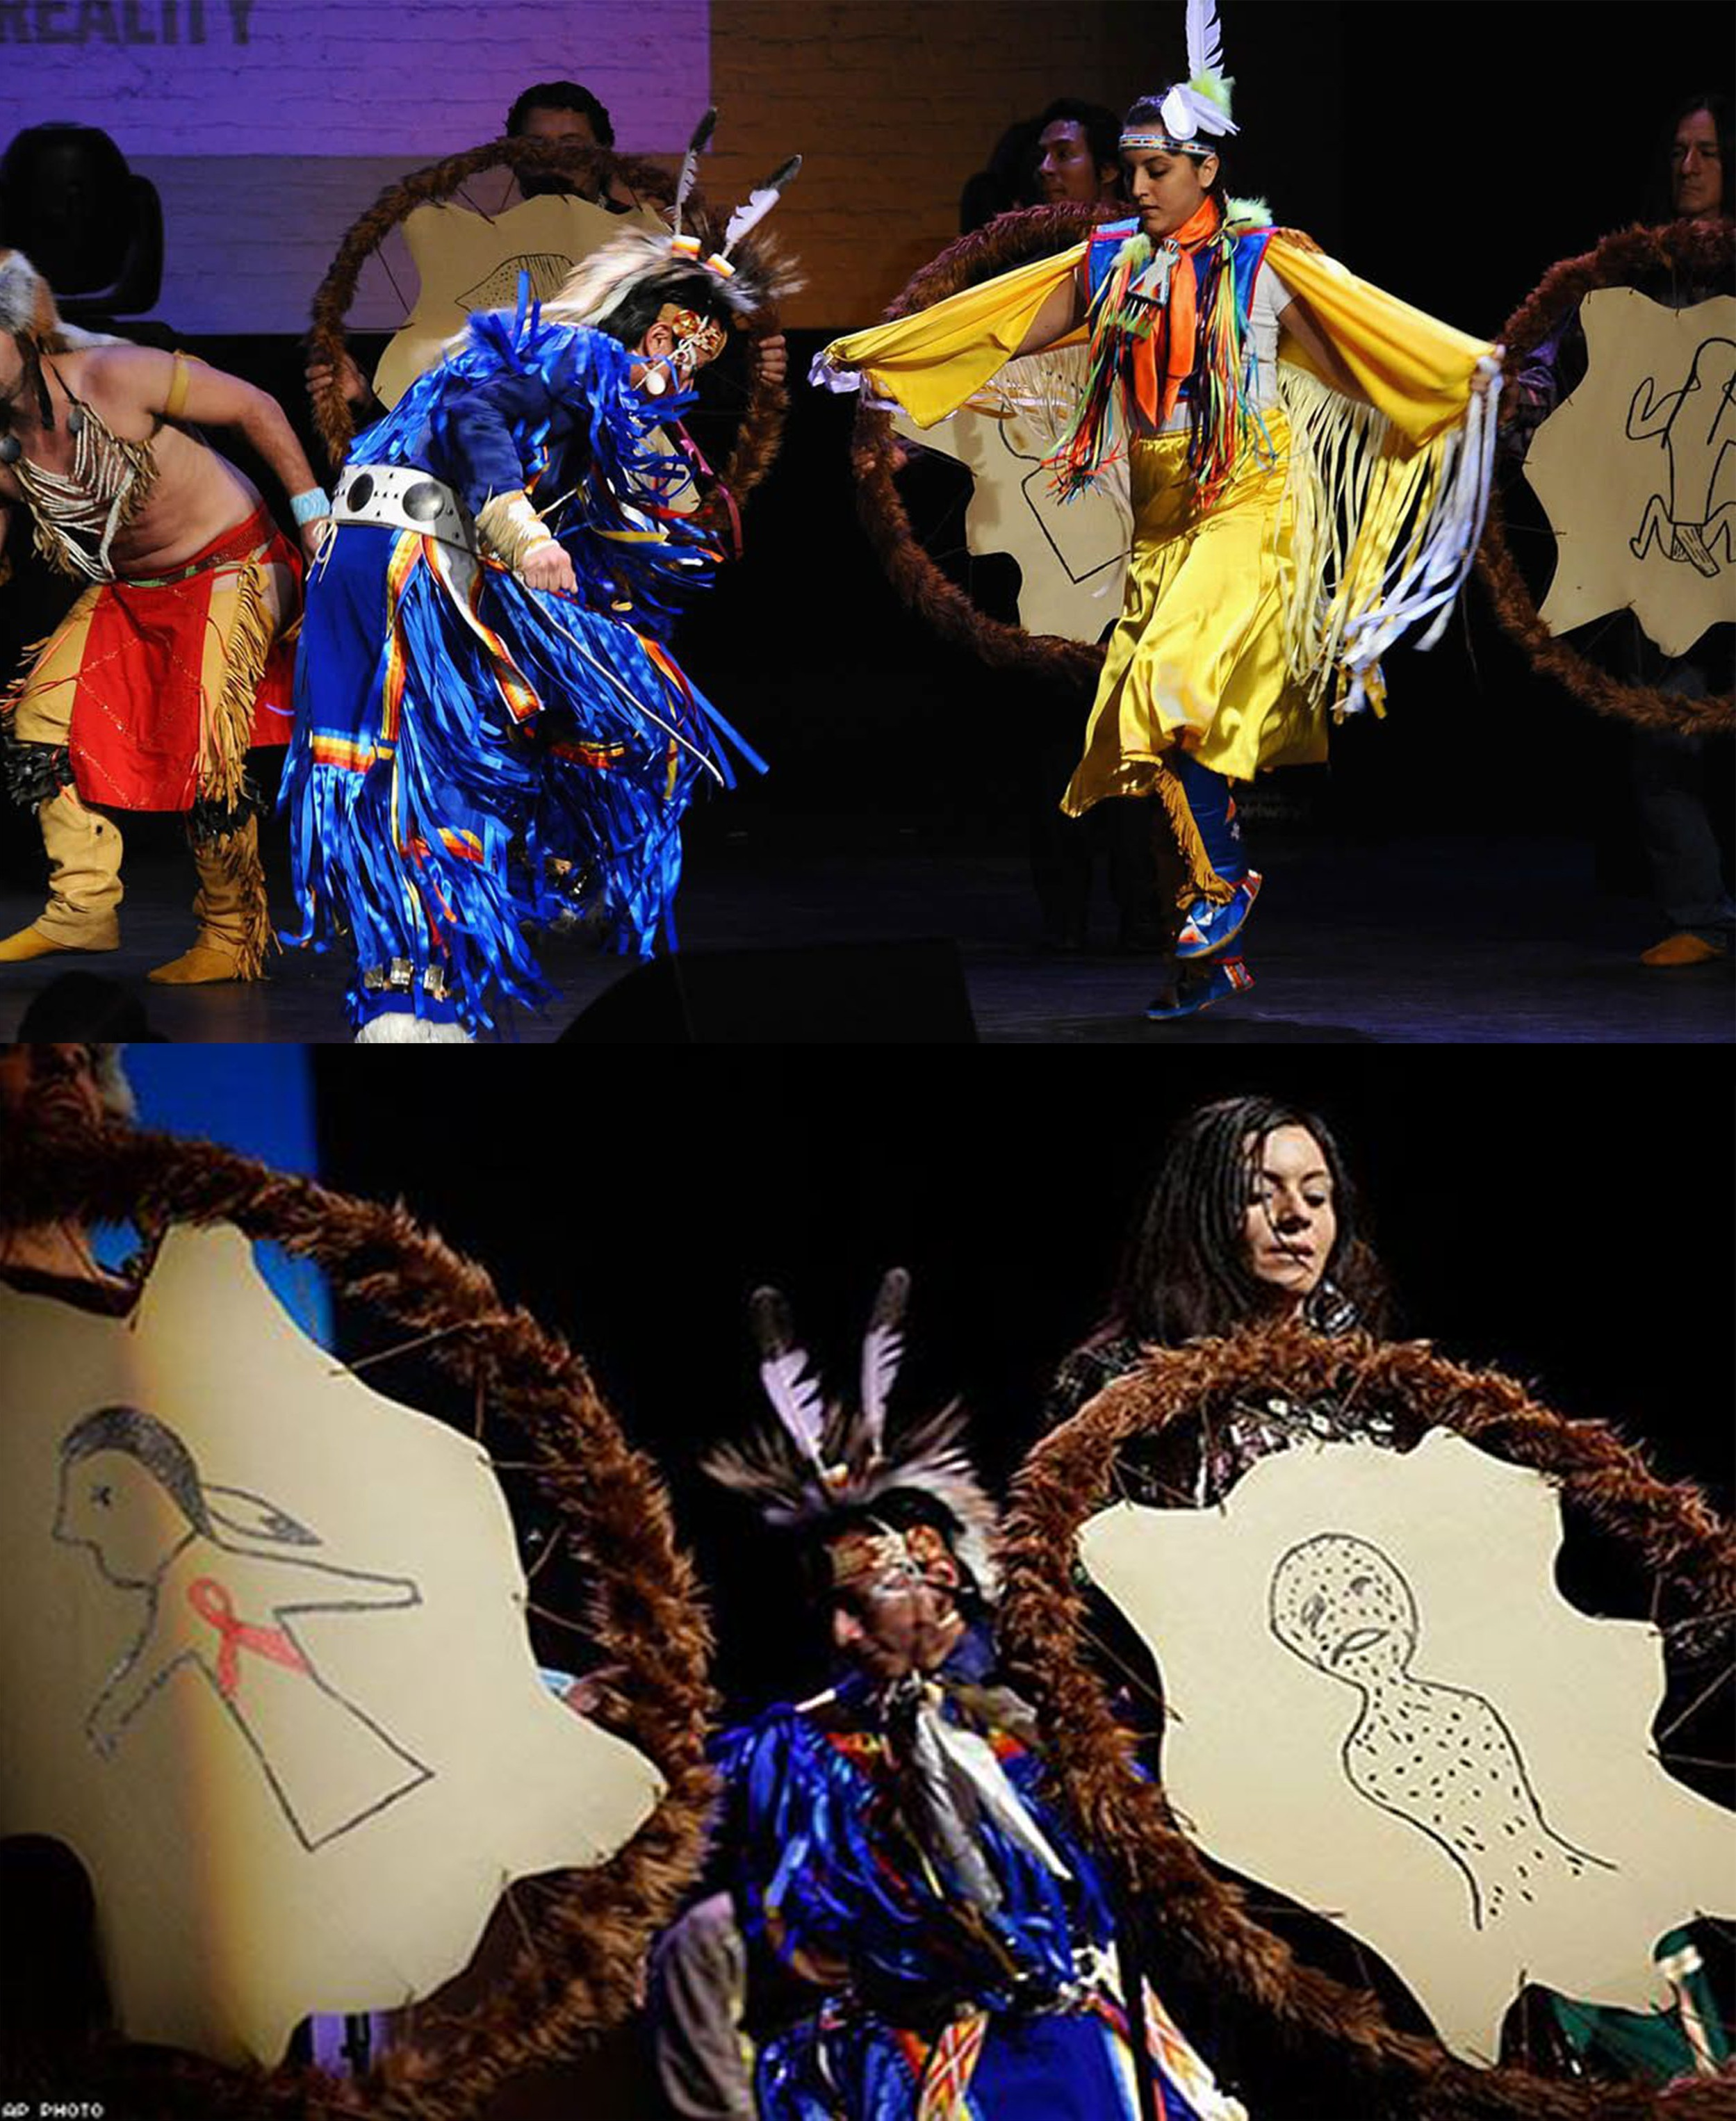 A previous Winter Count project Sheldon worked on. Title: Apollo Winter Count - American Indian Community House. Medium: Visual Art/Performance Art. Date Completed: World AIDS Day, December 1st, 2015. Performed at: Apollo Theater, Harlem, New York